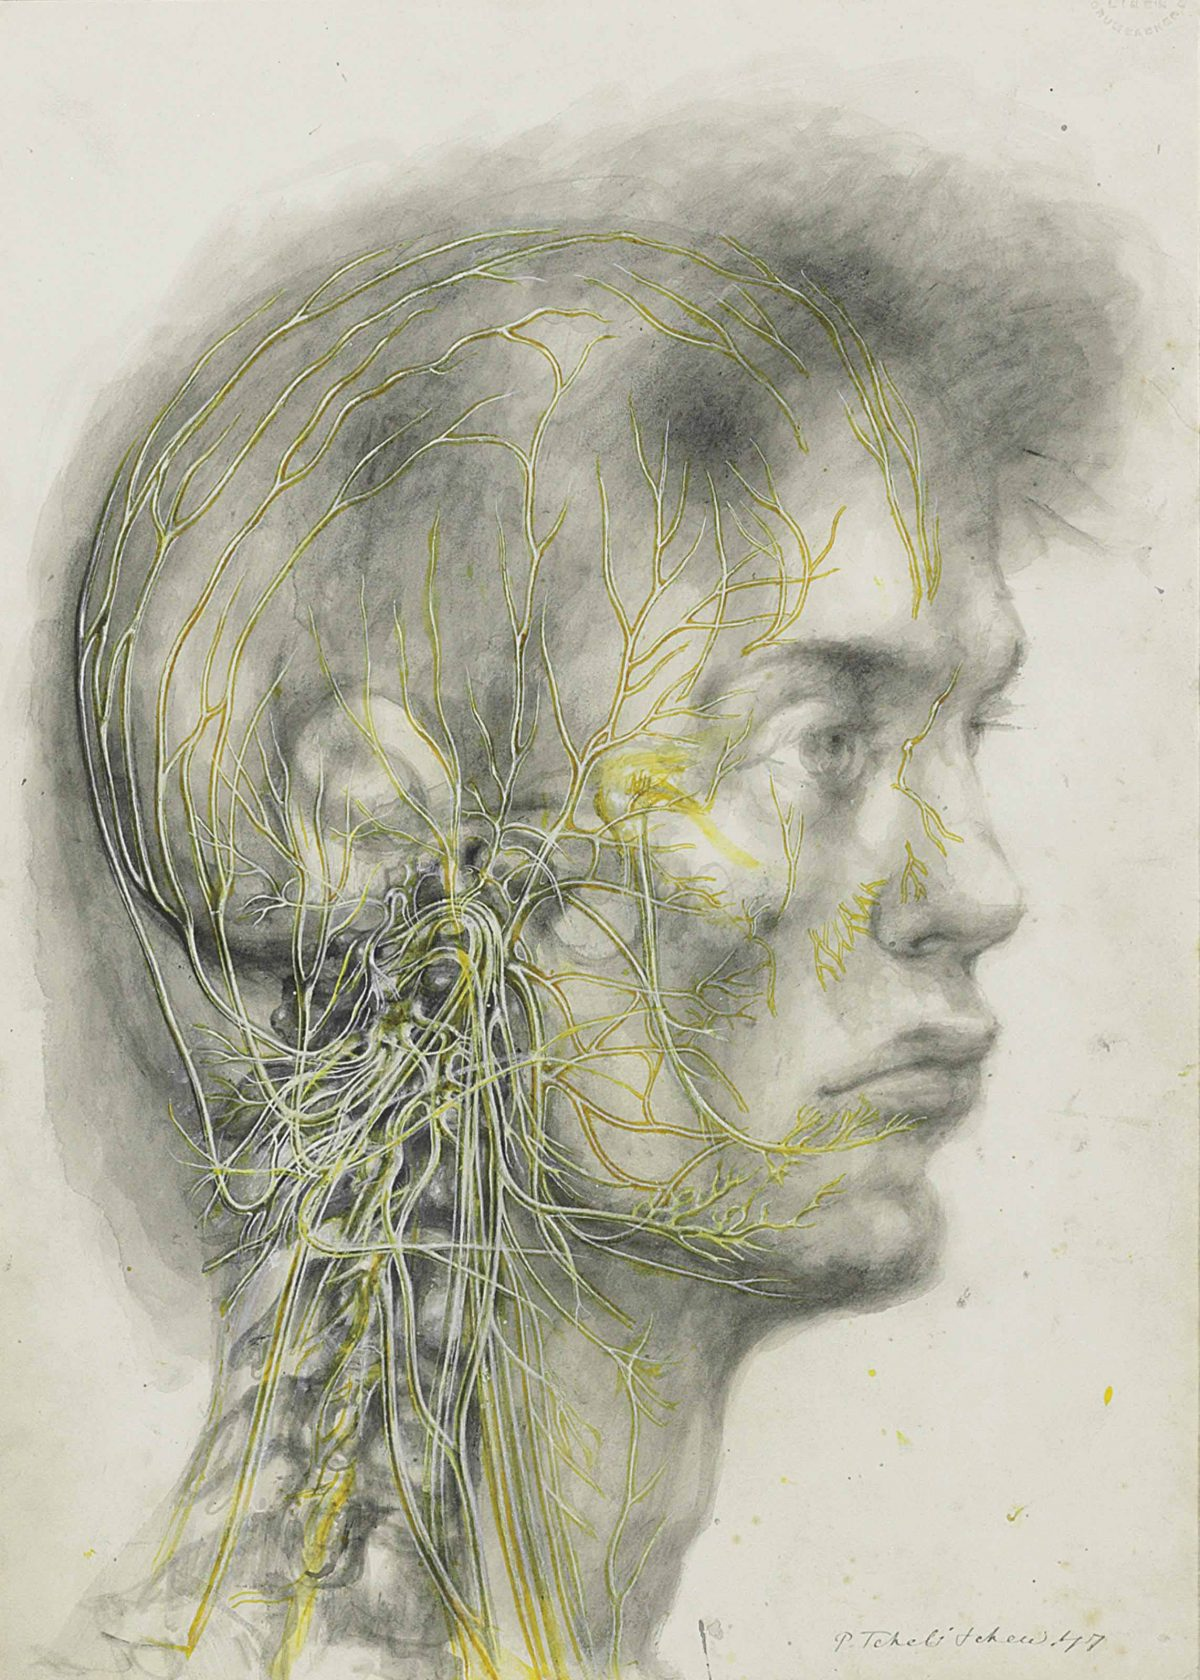 Pavel Tchelitchew (1898-1957) Anatomical Head with Yellow